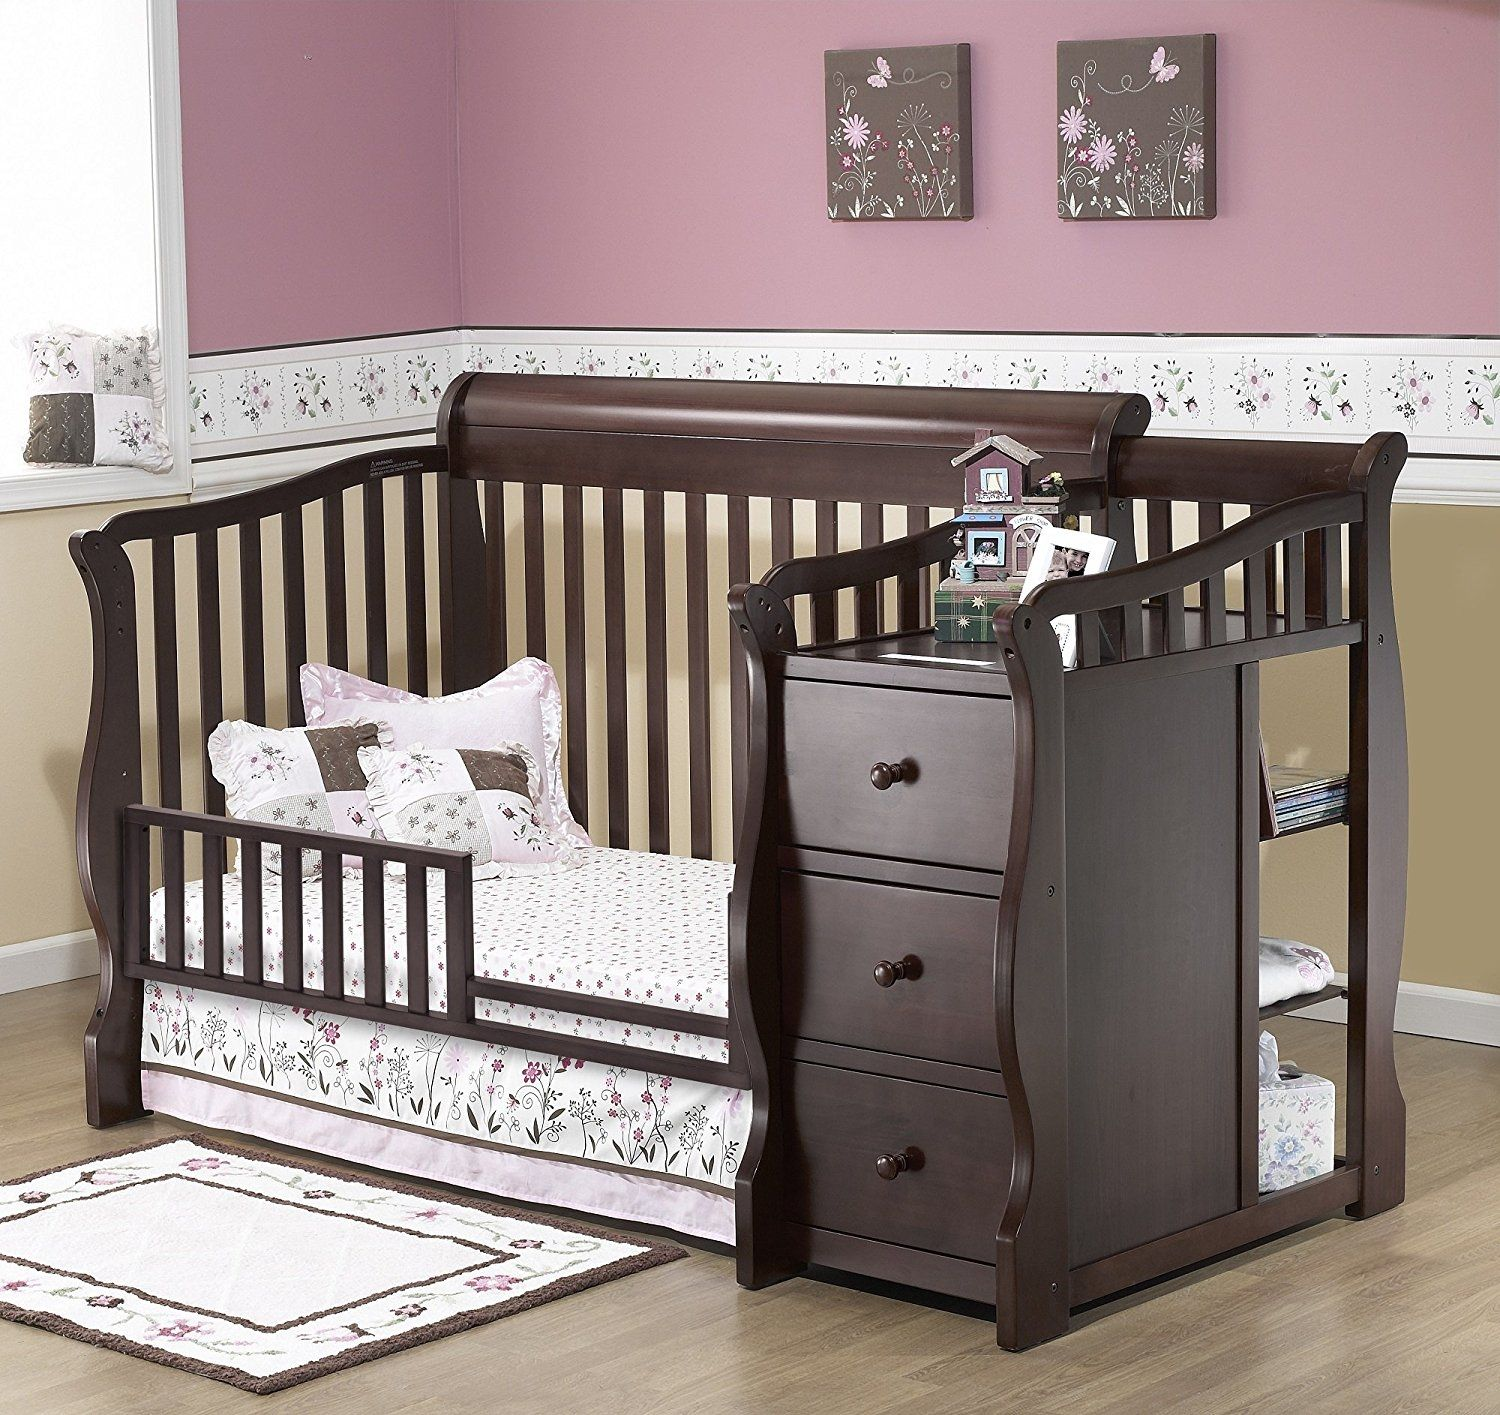 Crib With Attached Changing Table And Drawers | http://ezserver.us ...